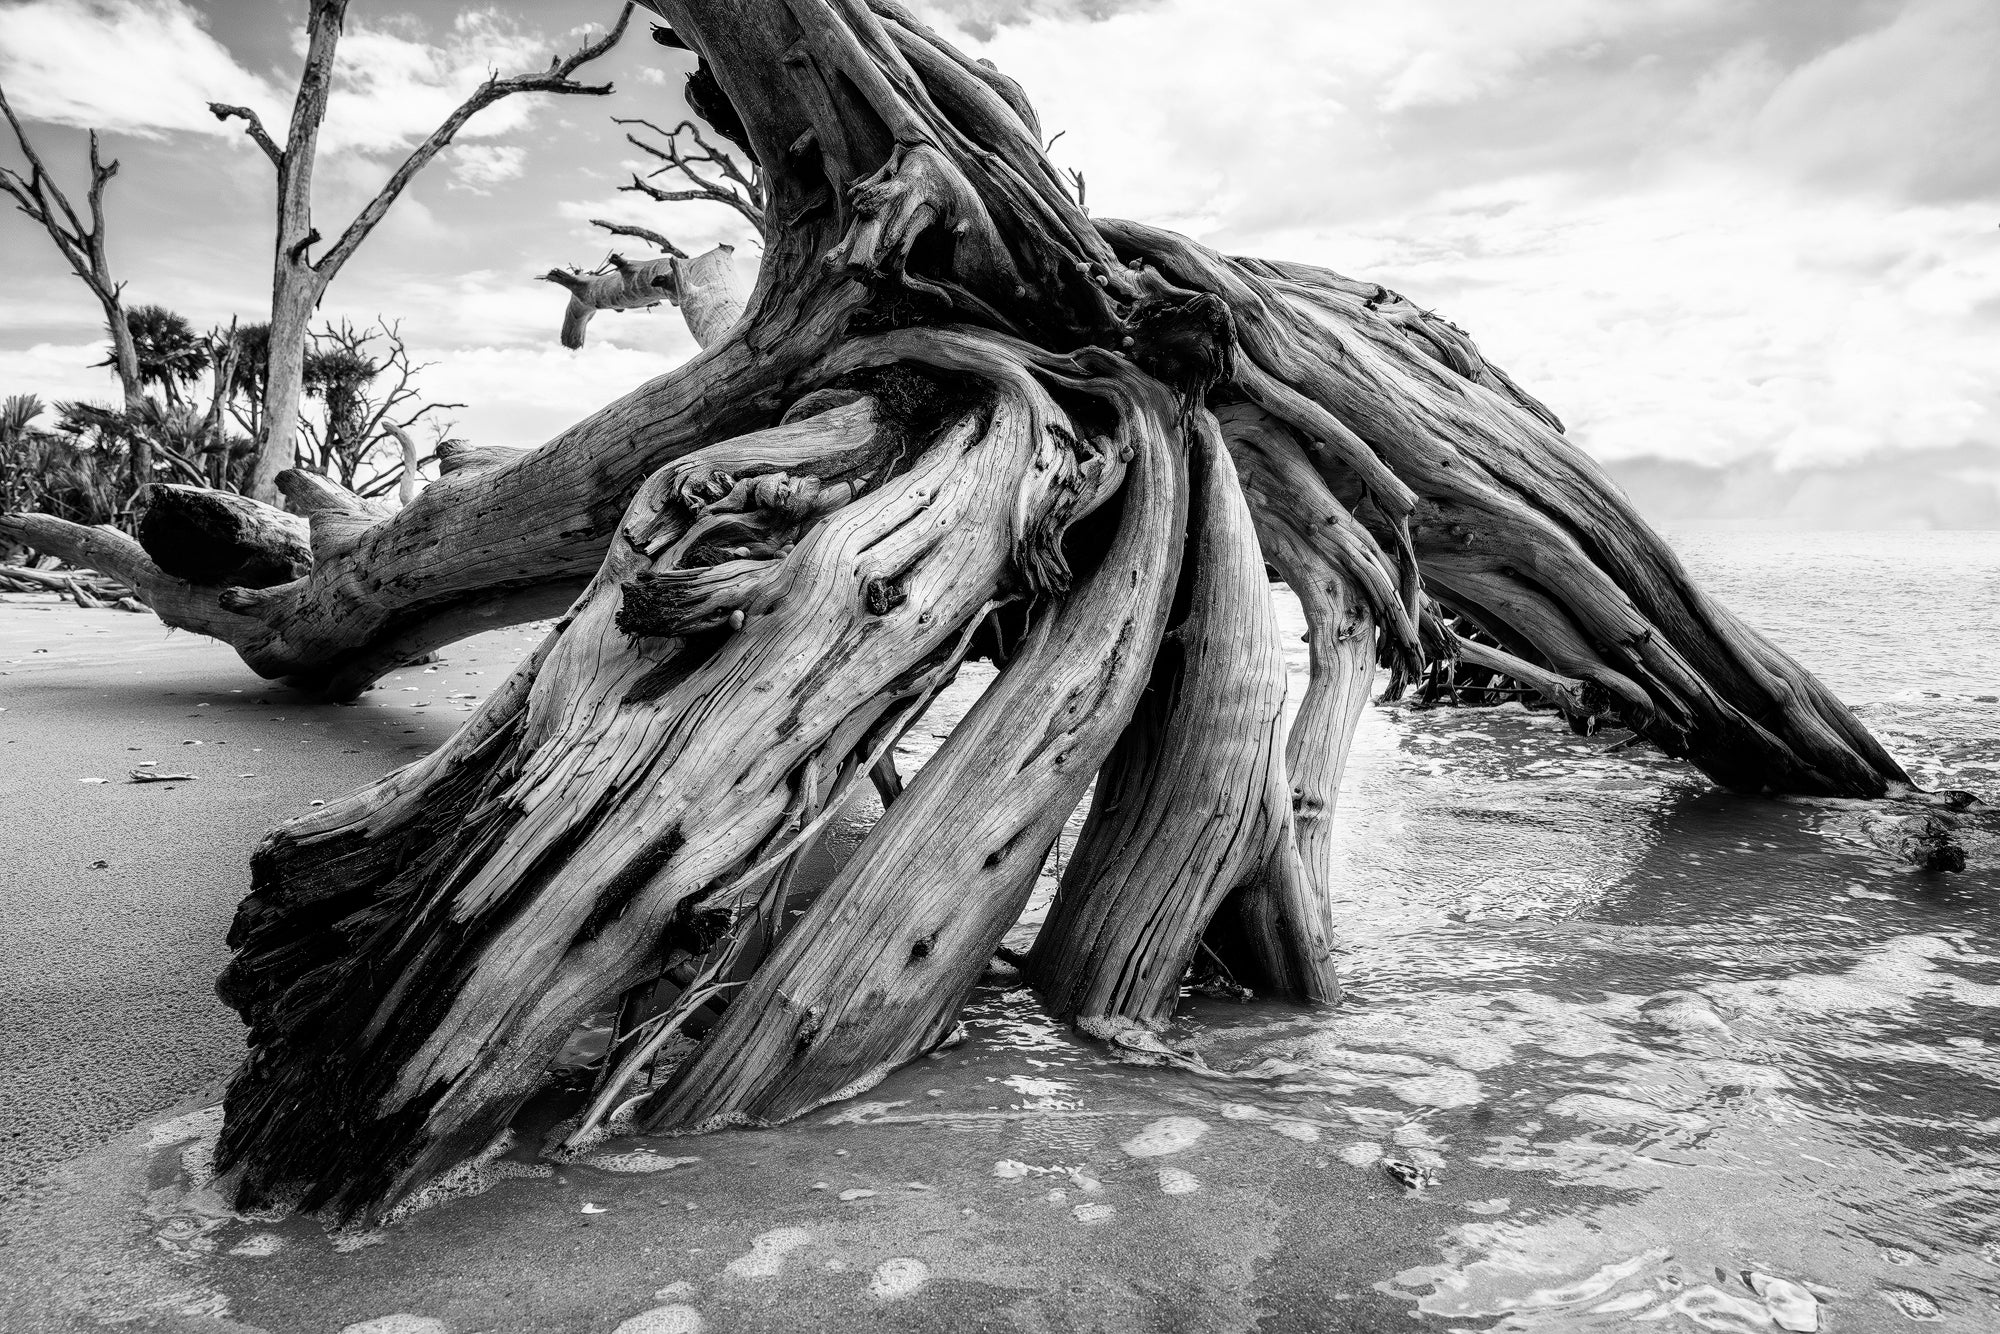 Beach Driftwood - Black and White Photograph by Keith Dotson. Buy a fine art print here.